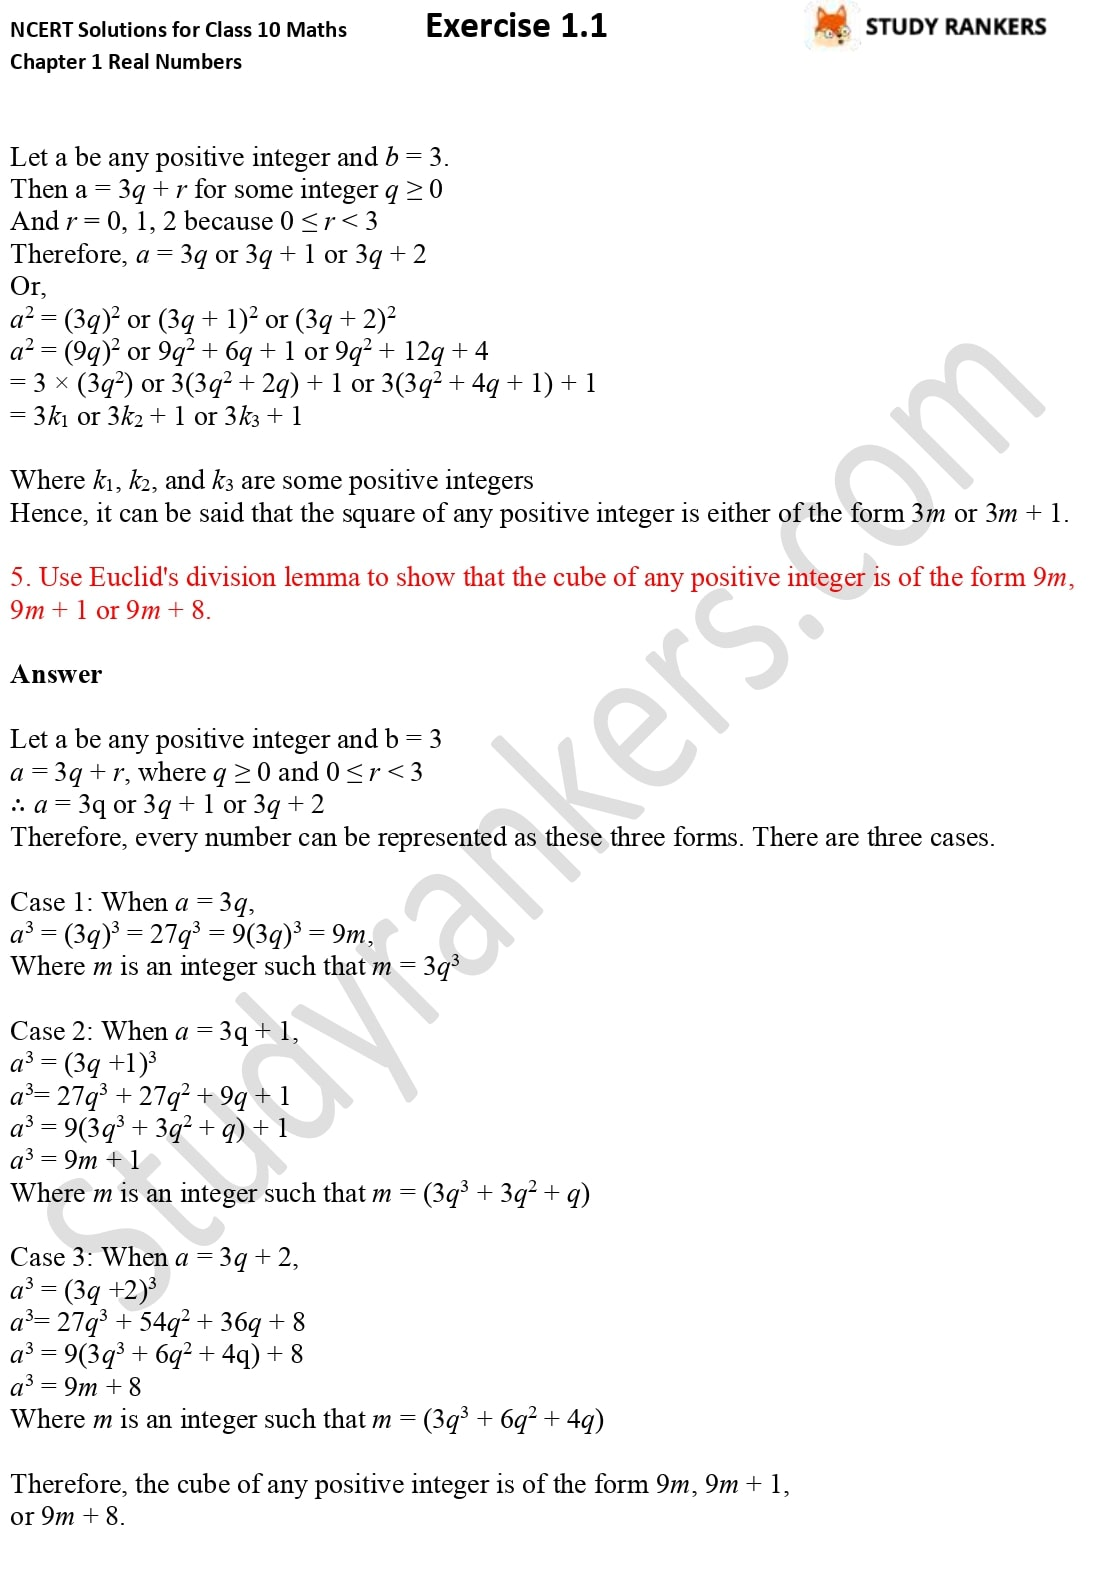 NCERT Solutions for Class 10 Maths Chapter 1 Real Numbers Exercise 1.1 3